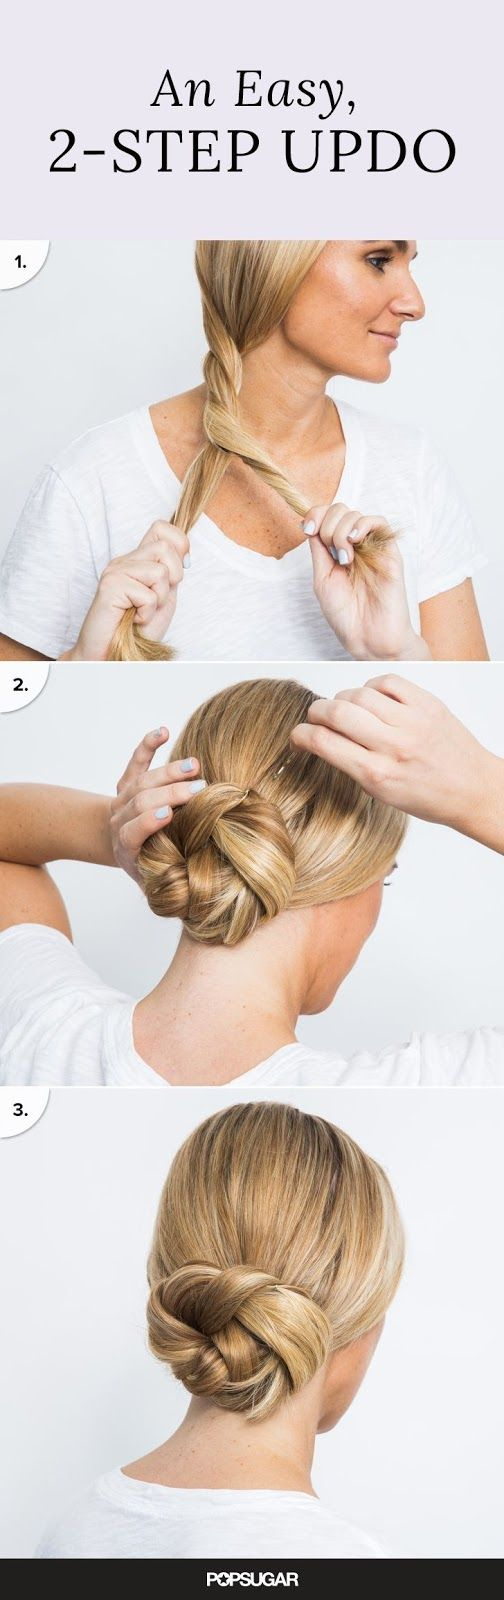 Here are some fun and easy hairstyles to switch up your look that